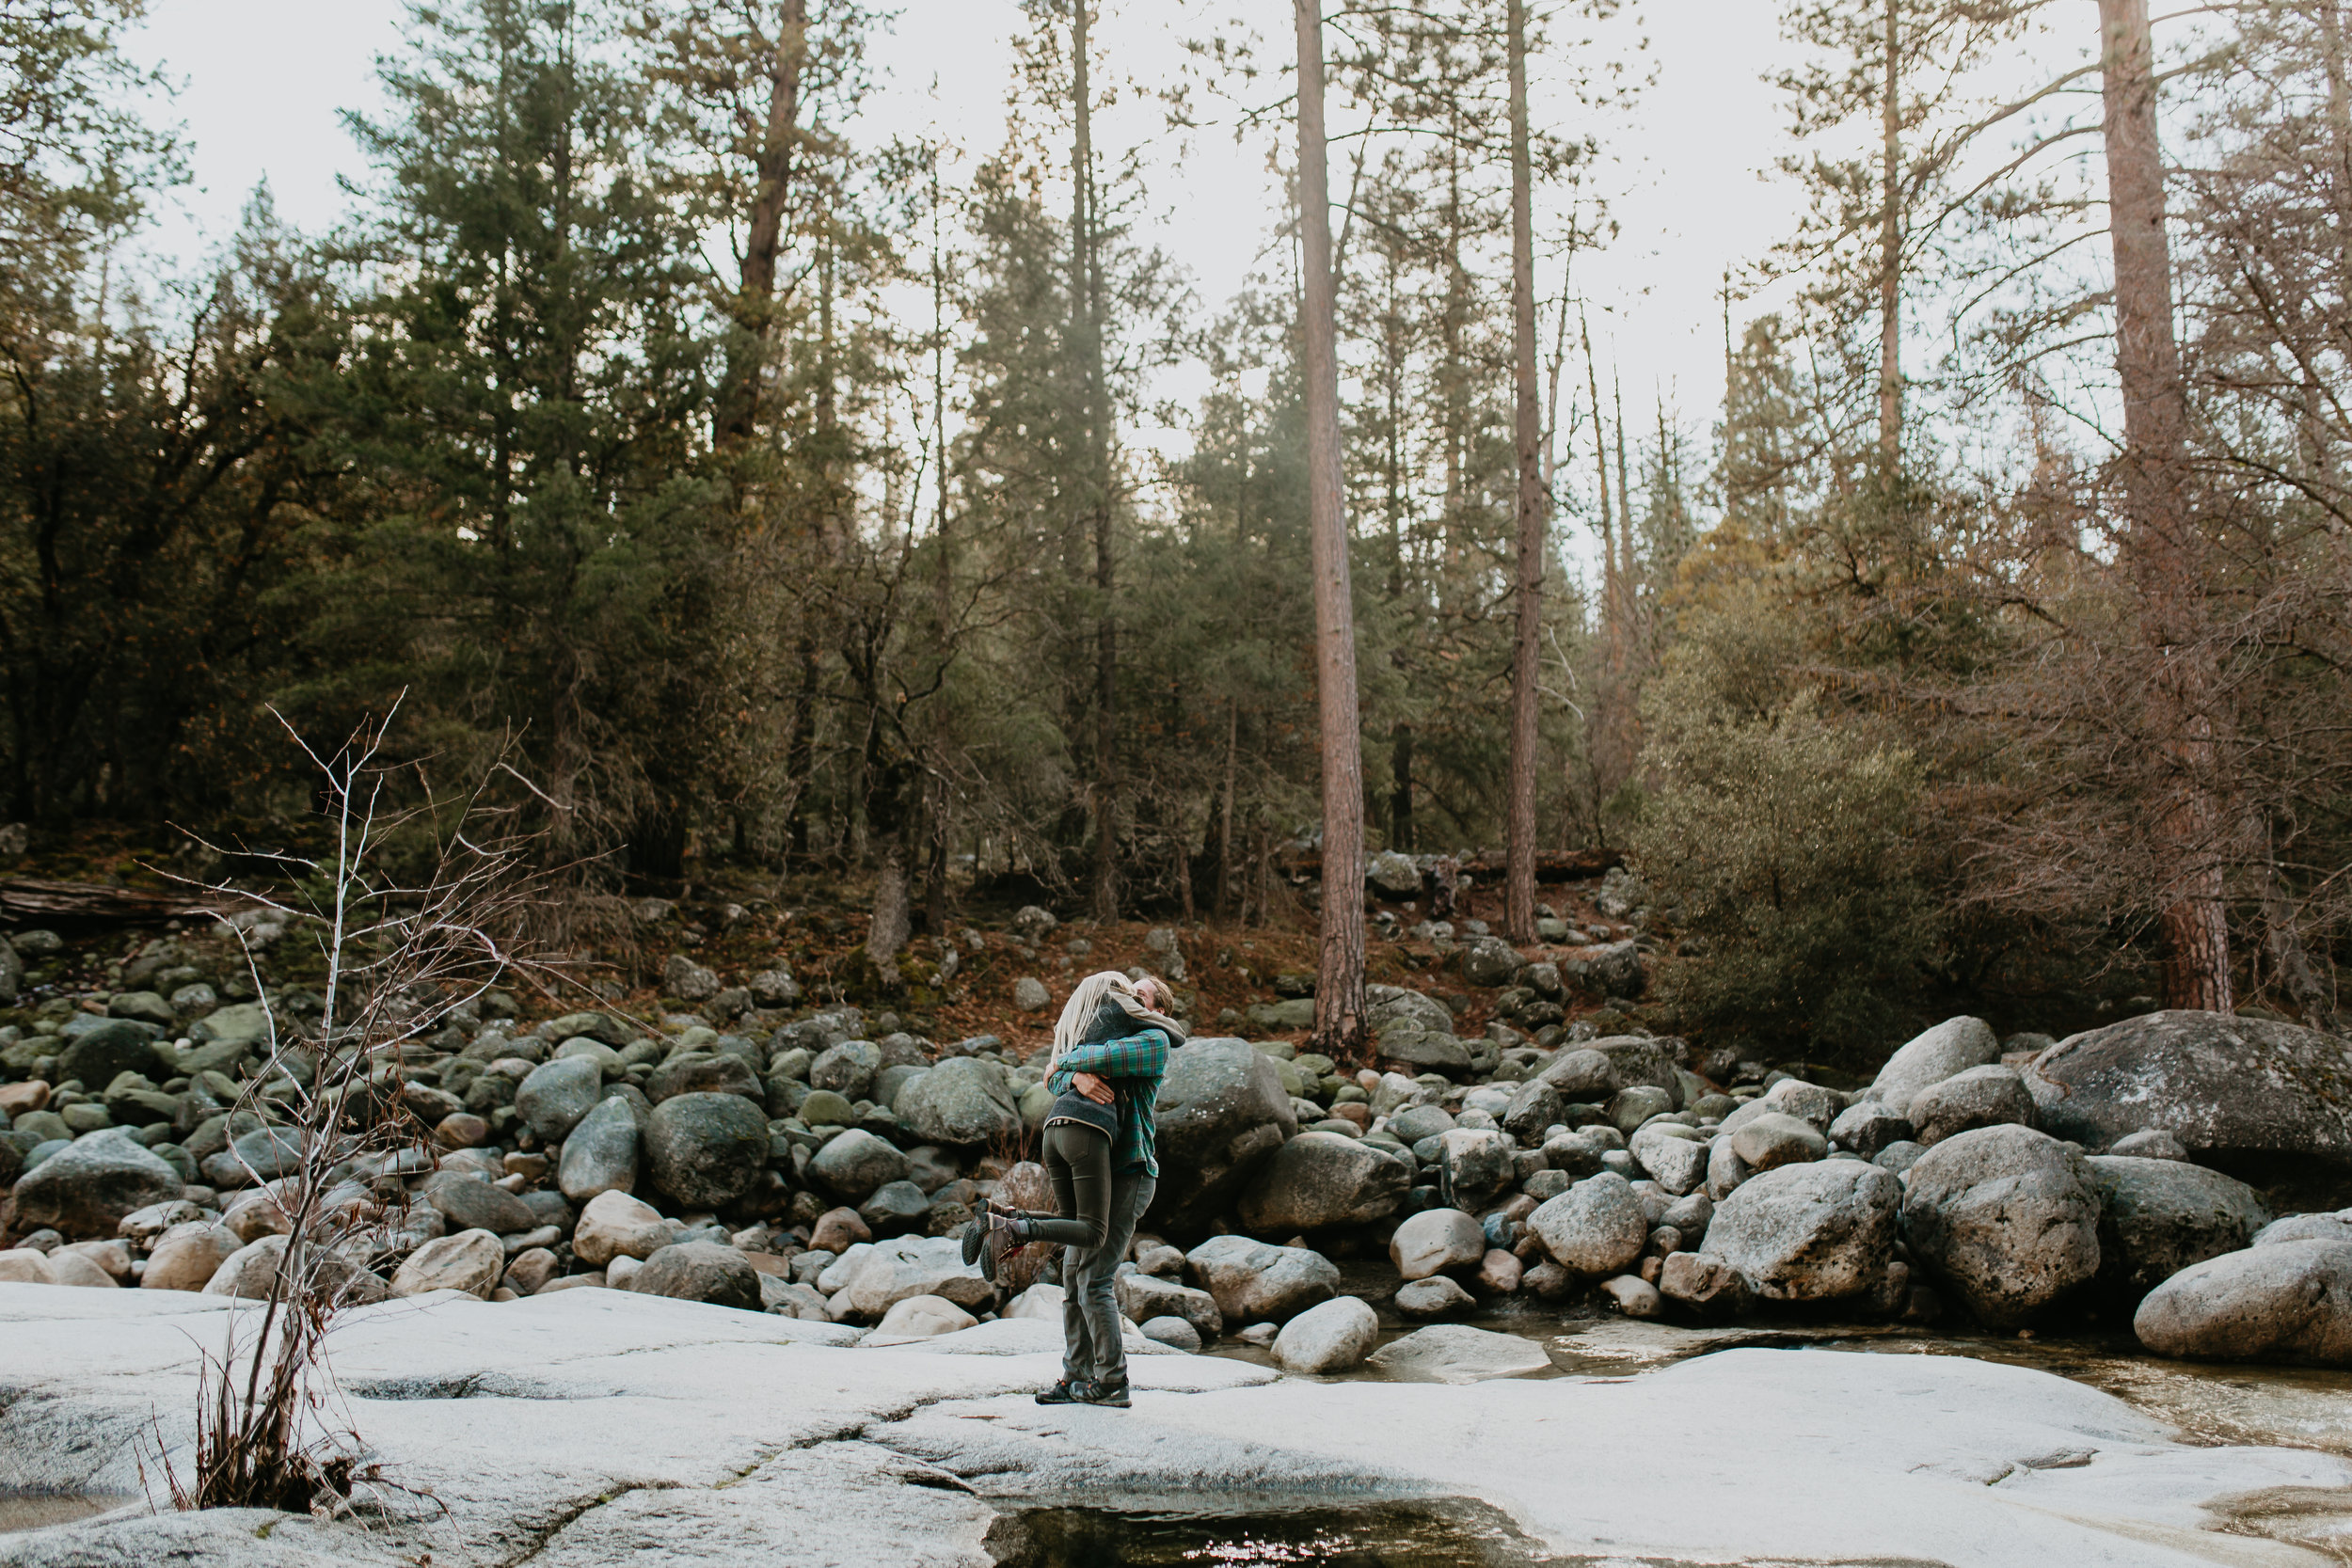 nicole-daacke-photography-yosemite-riverside-adventurous-engagement-photos-in-yosemite-national-park-elopement-photographer-weddings-travel-destination-wedding-eloping-elope-pine-forest-5.jpg